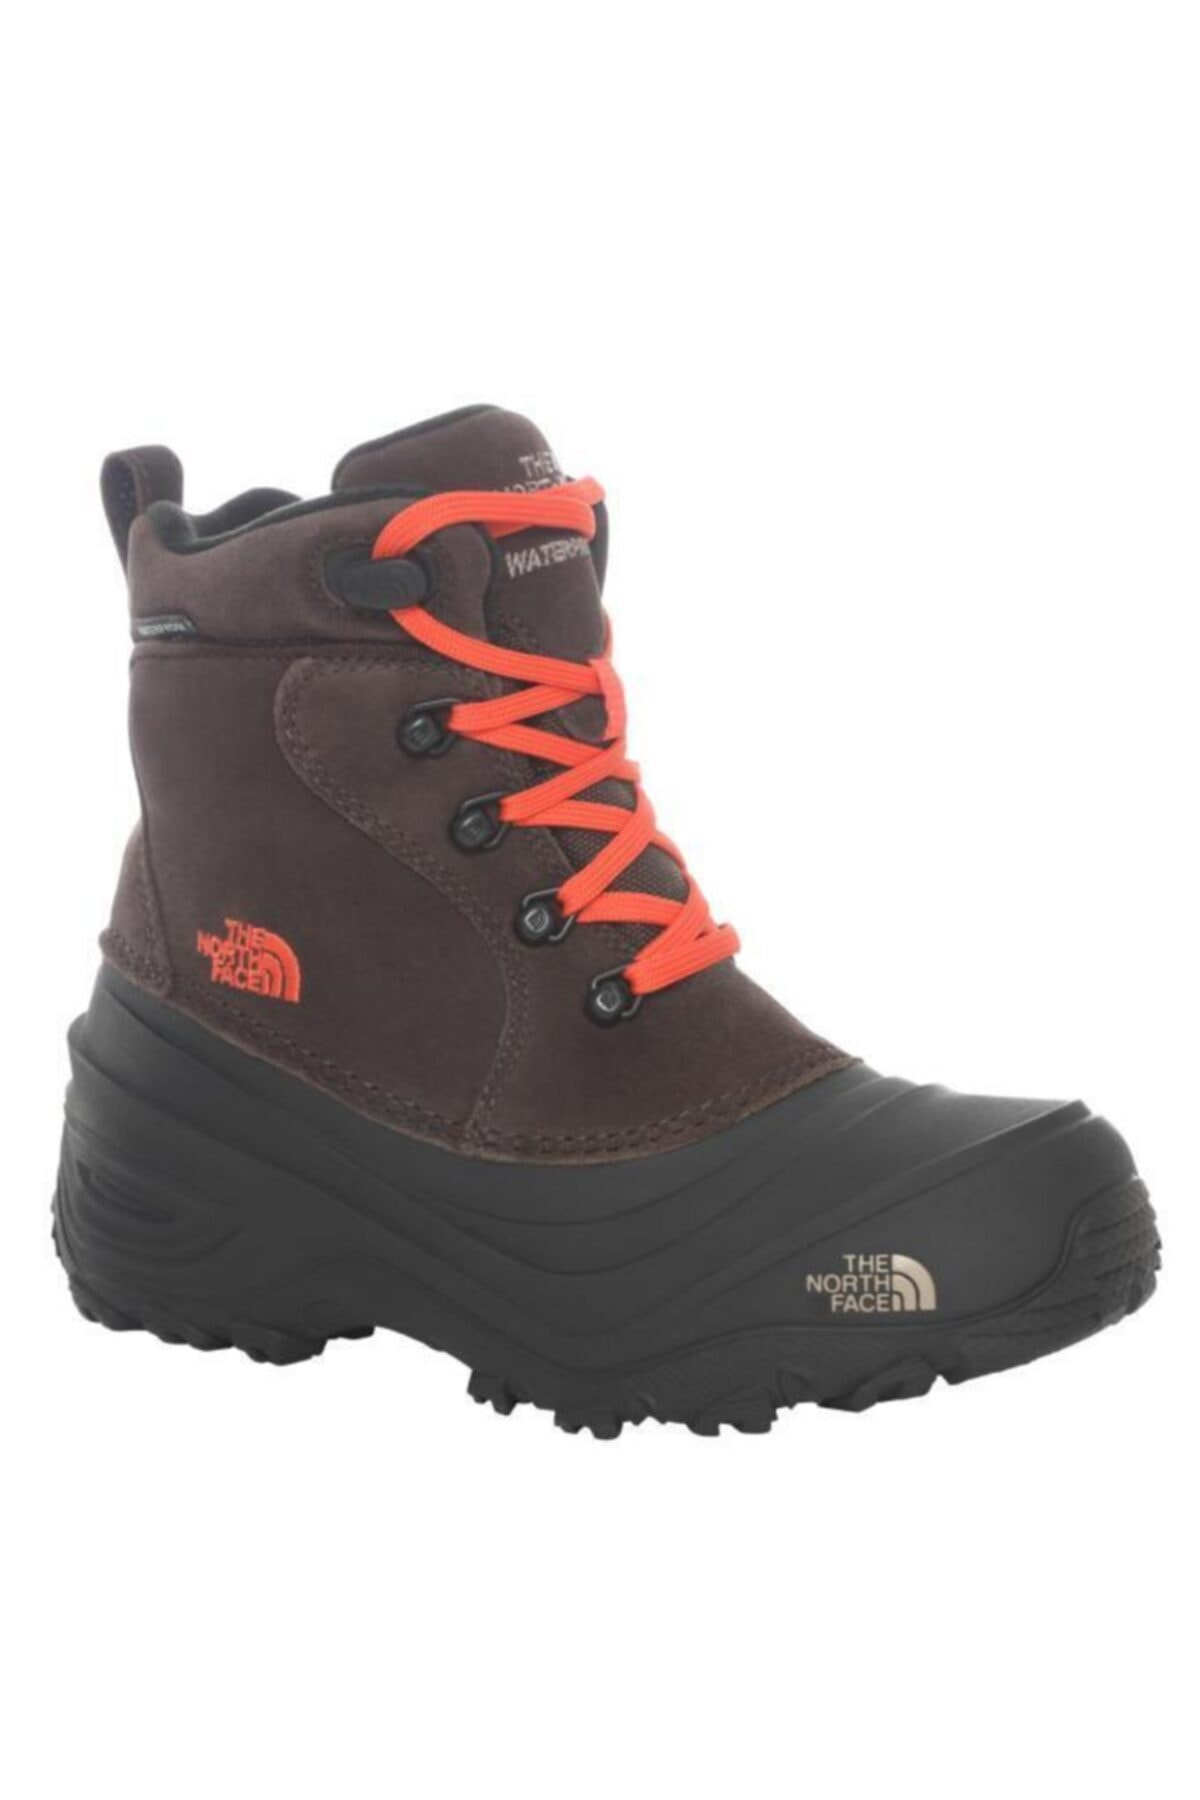 THE NORTH FACE Youth Chilkat Lace 2 Çocuk Bot Kahverengi 1